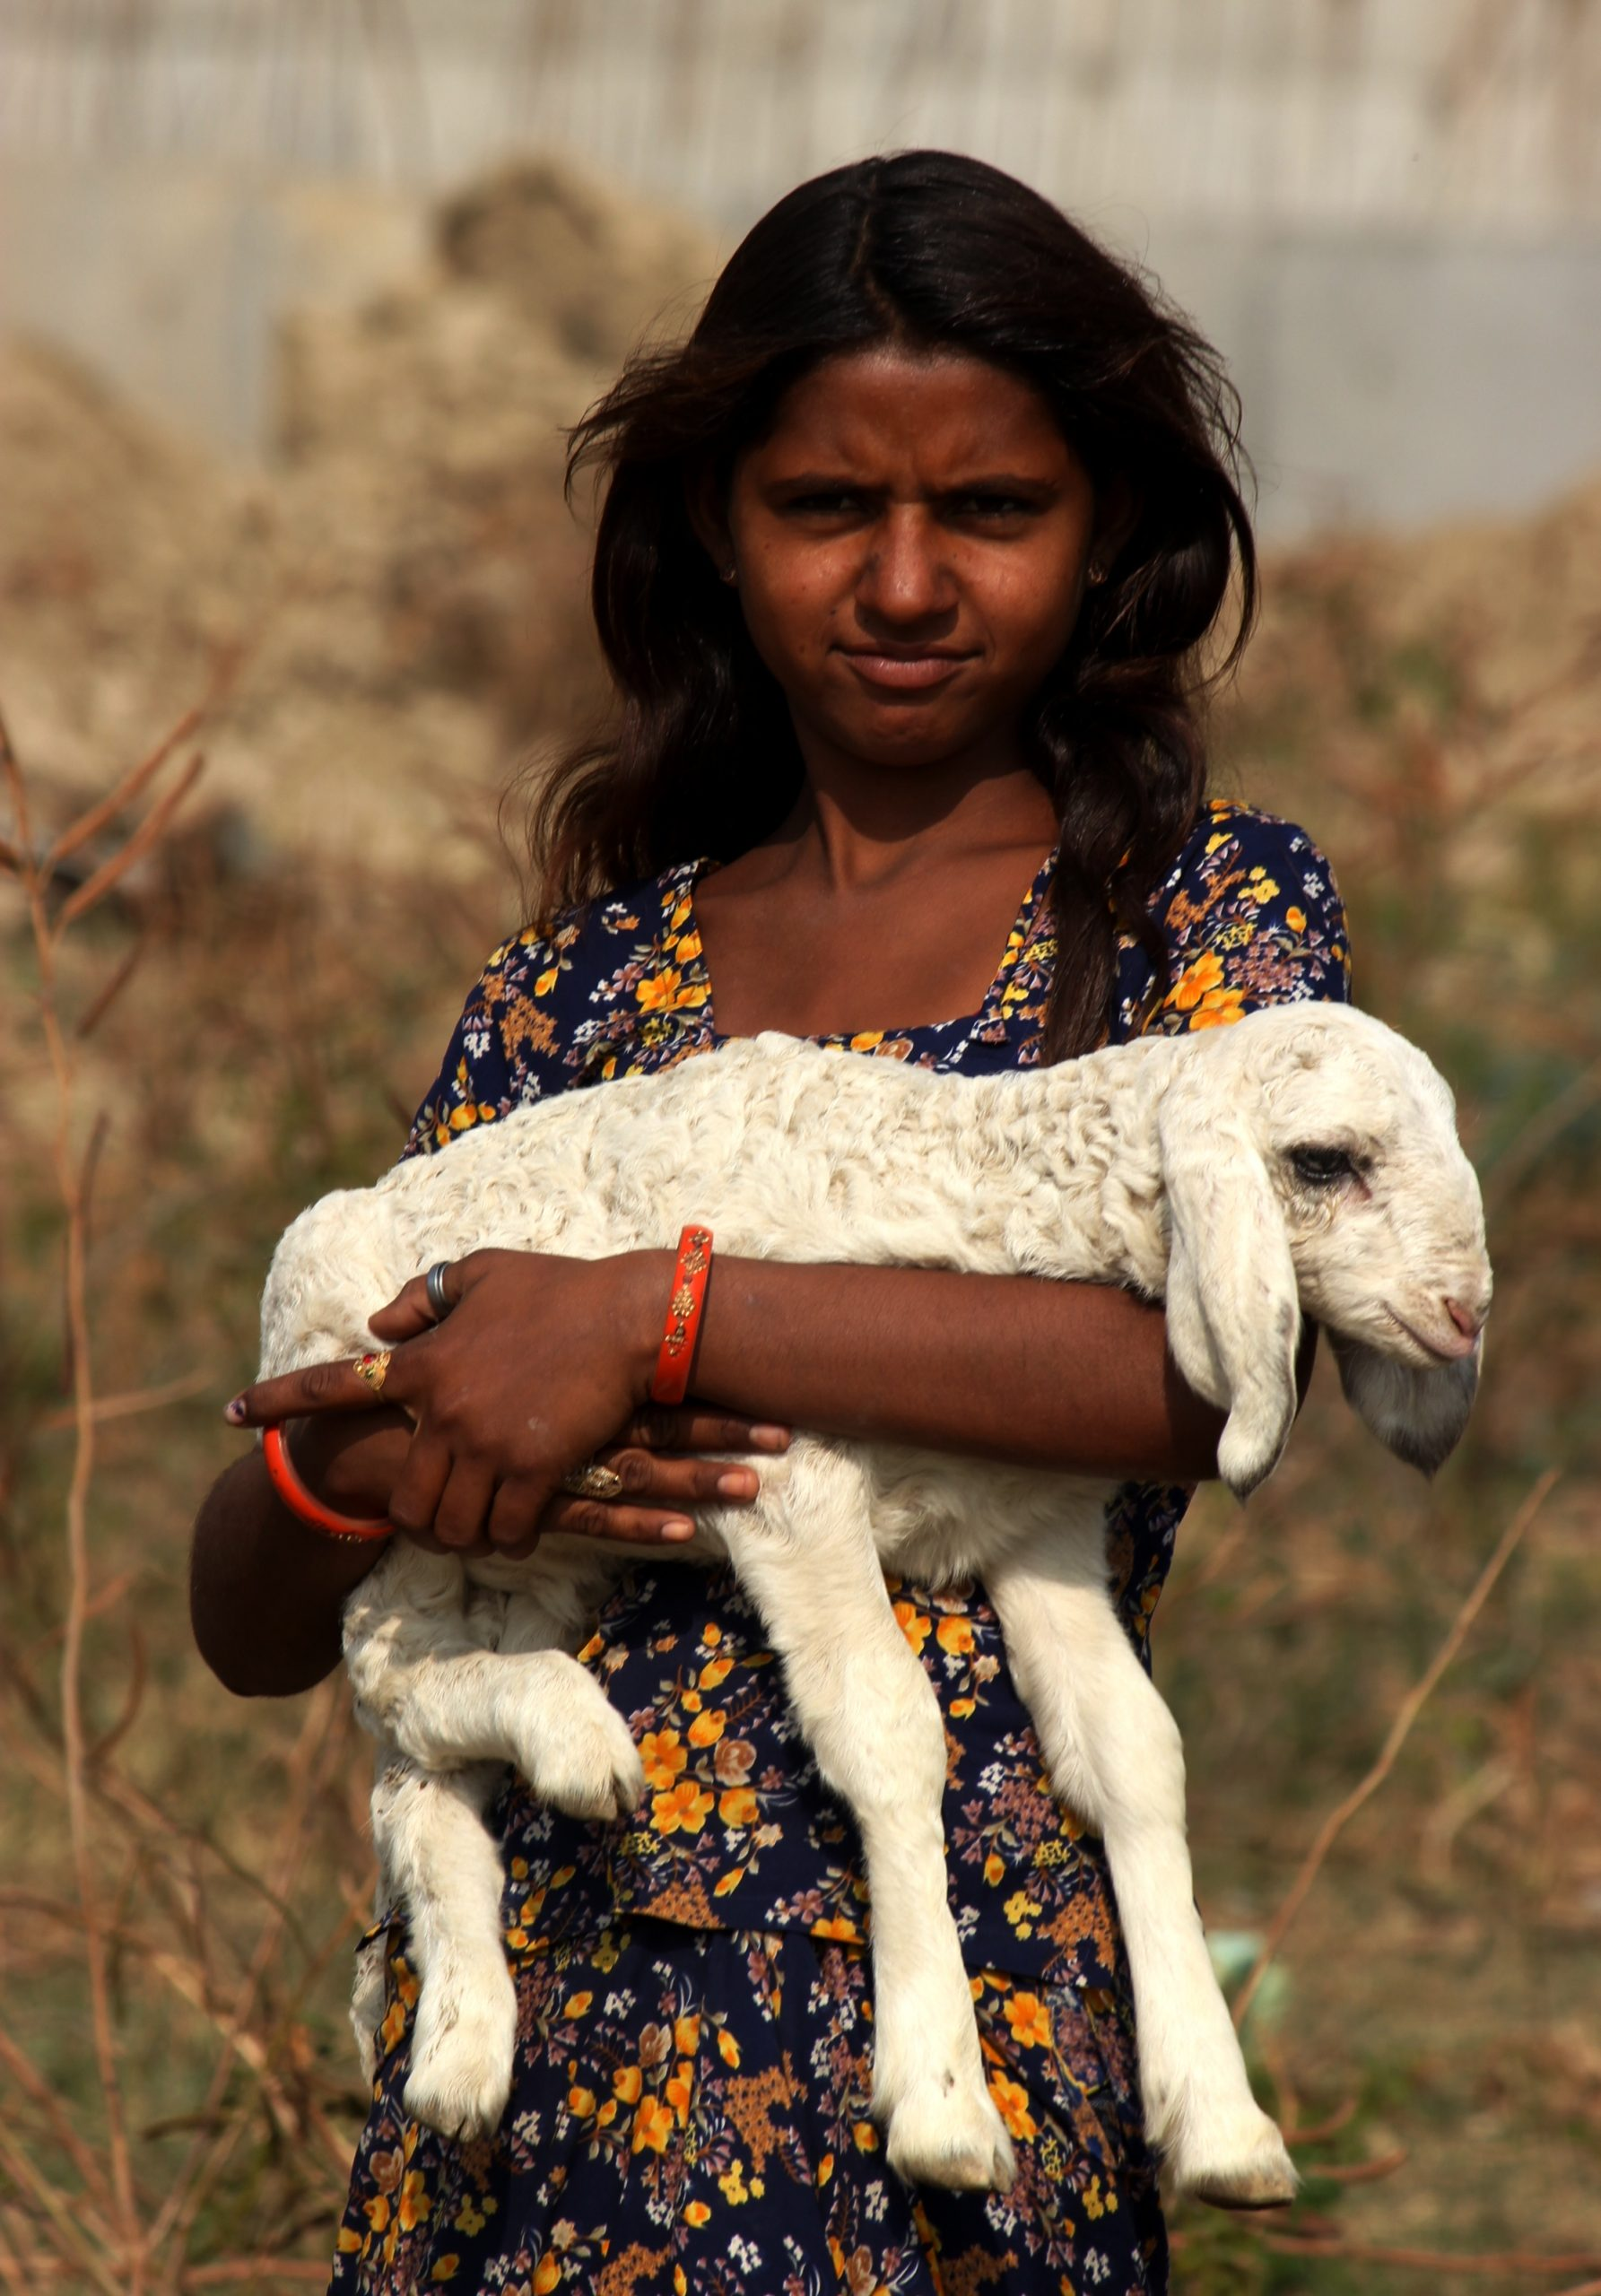 A girl holding baby goat